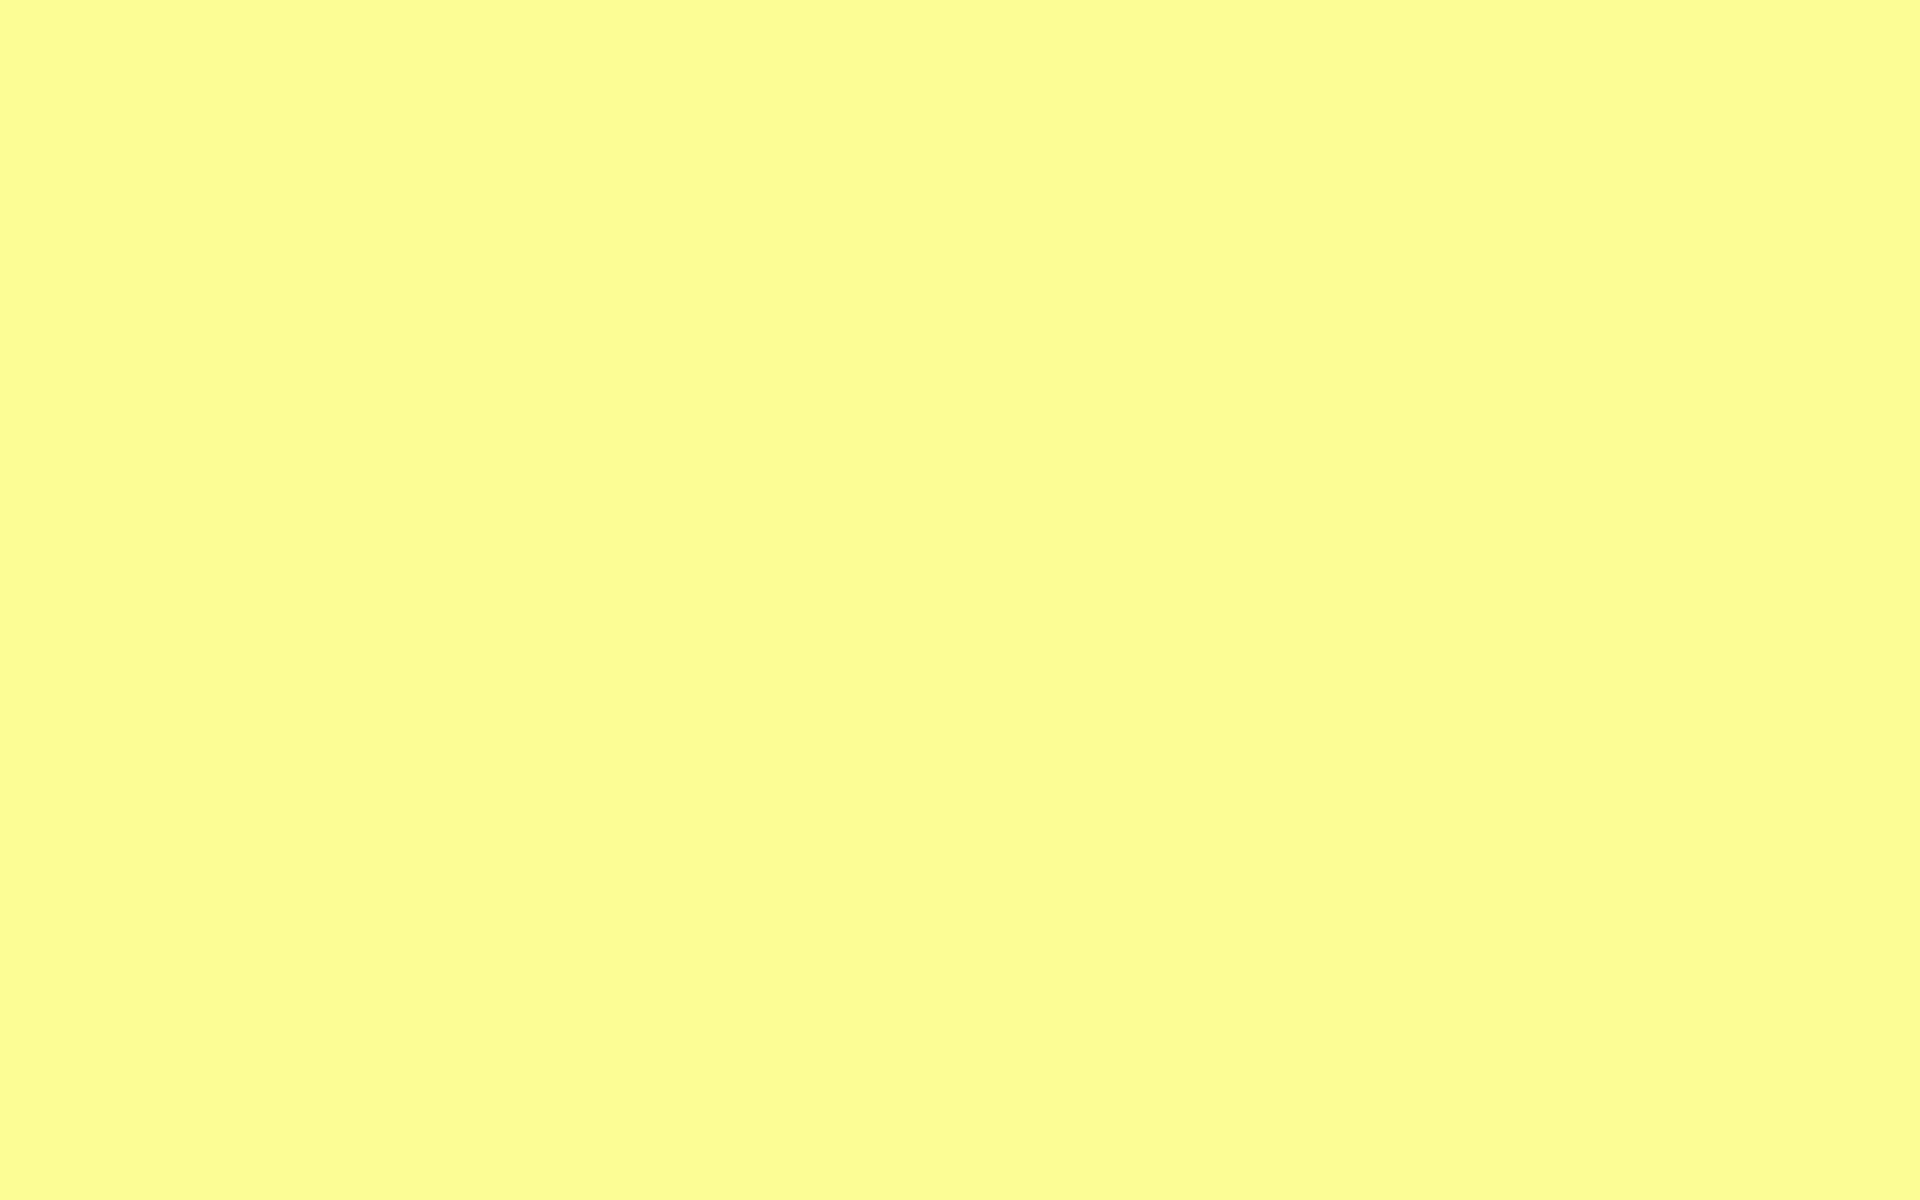 Free Download Solid Pastel Yellow Background 1920x1200